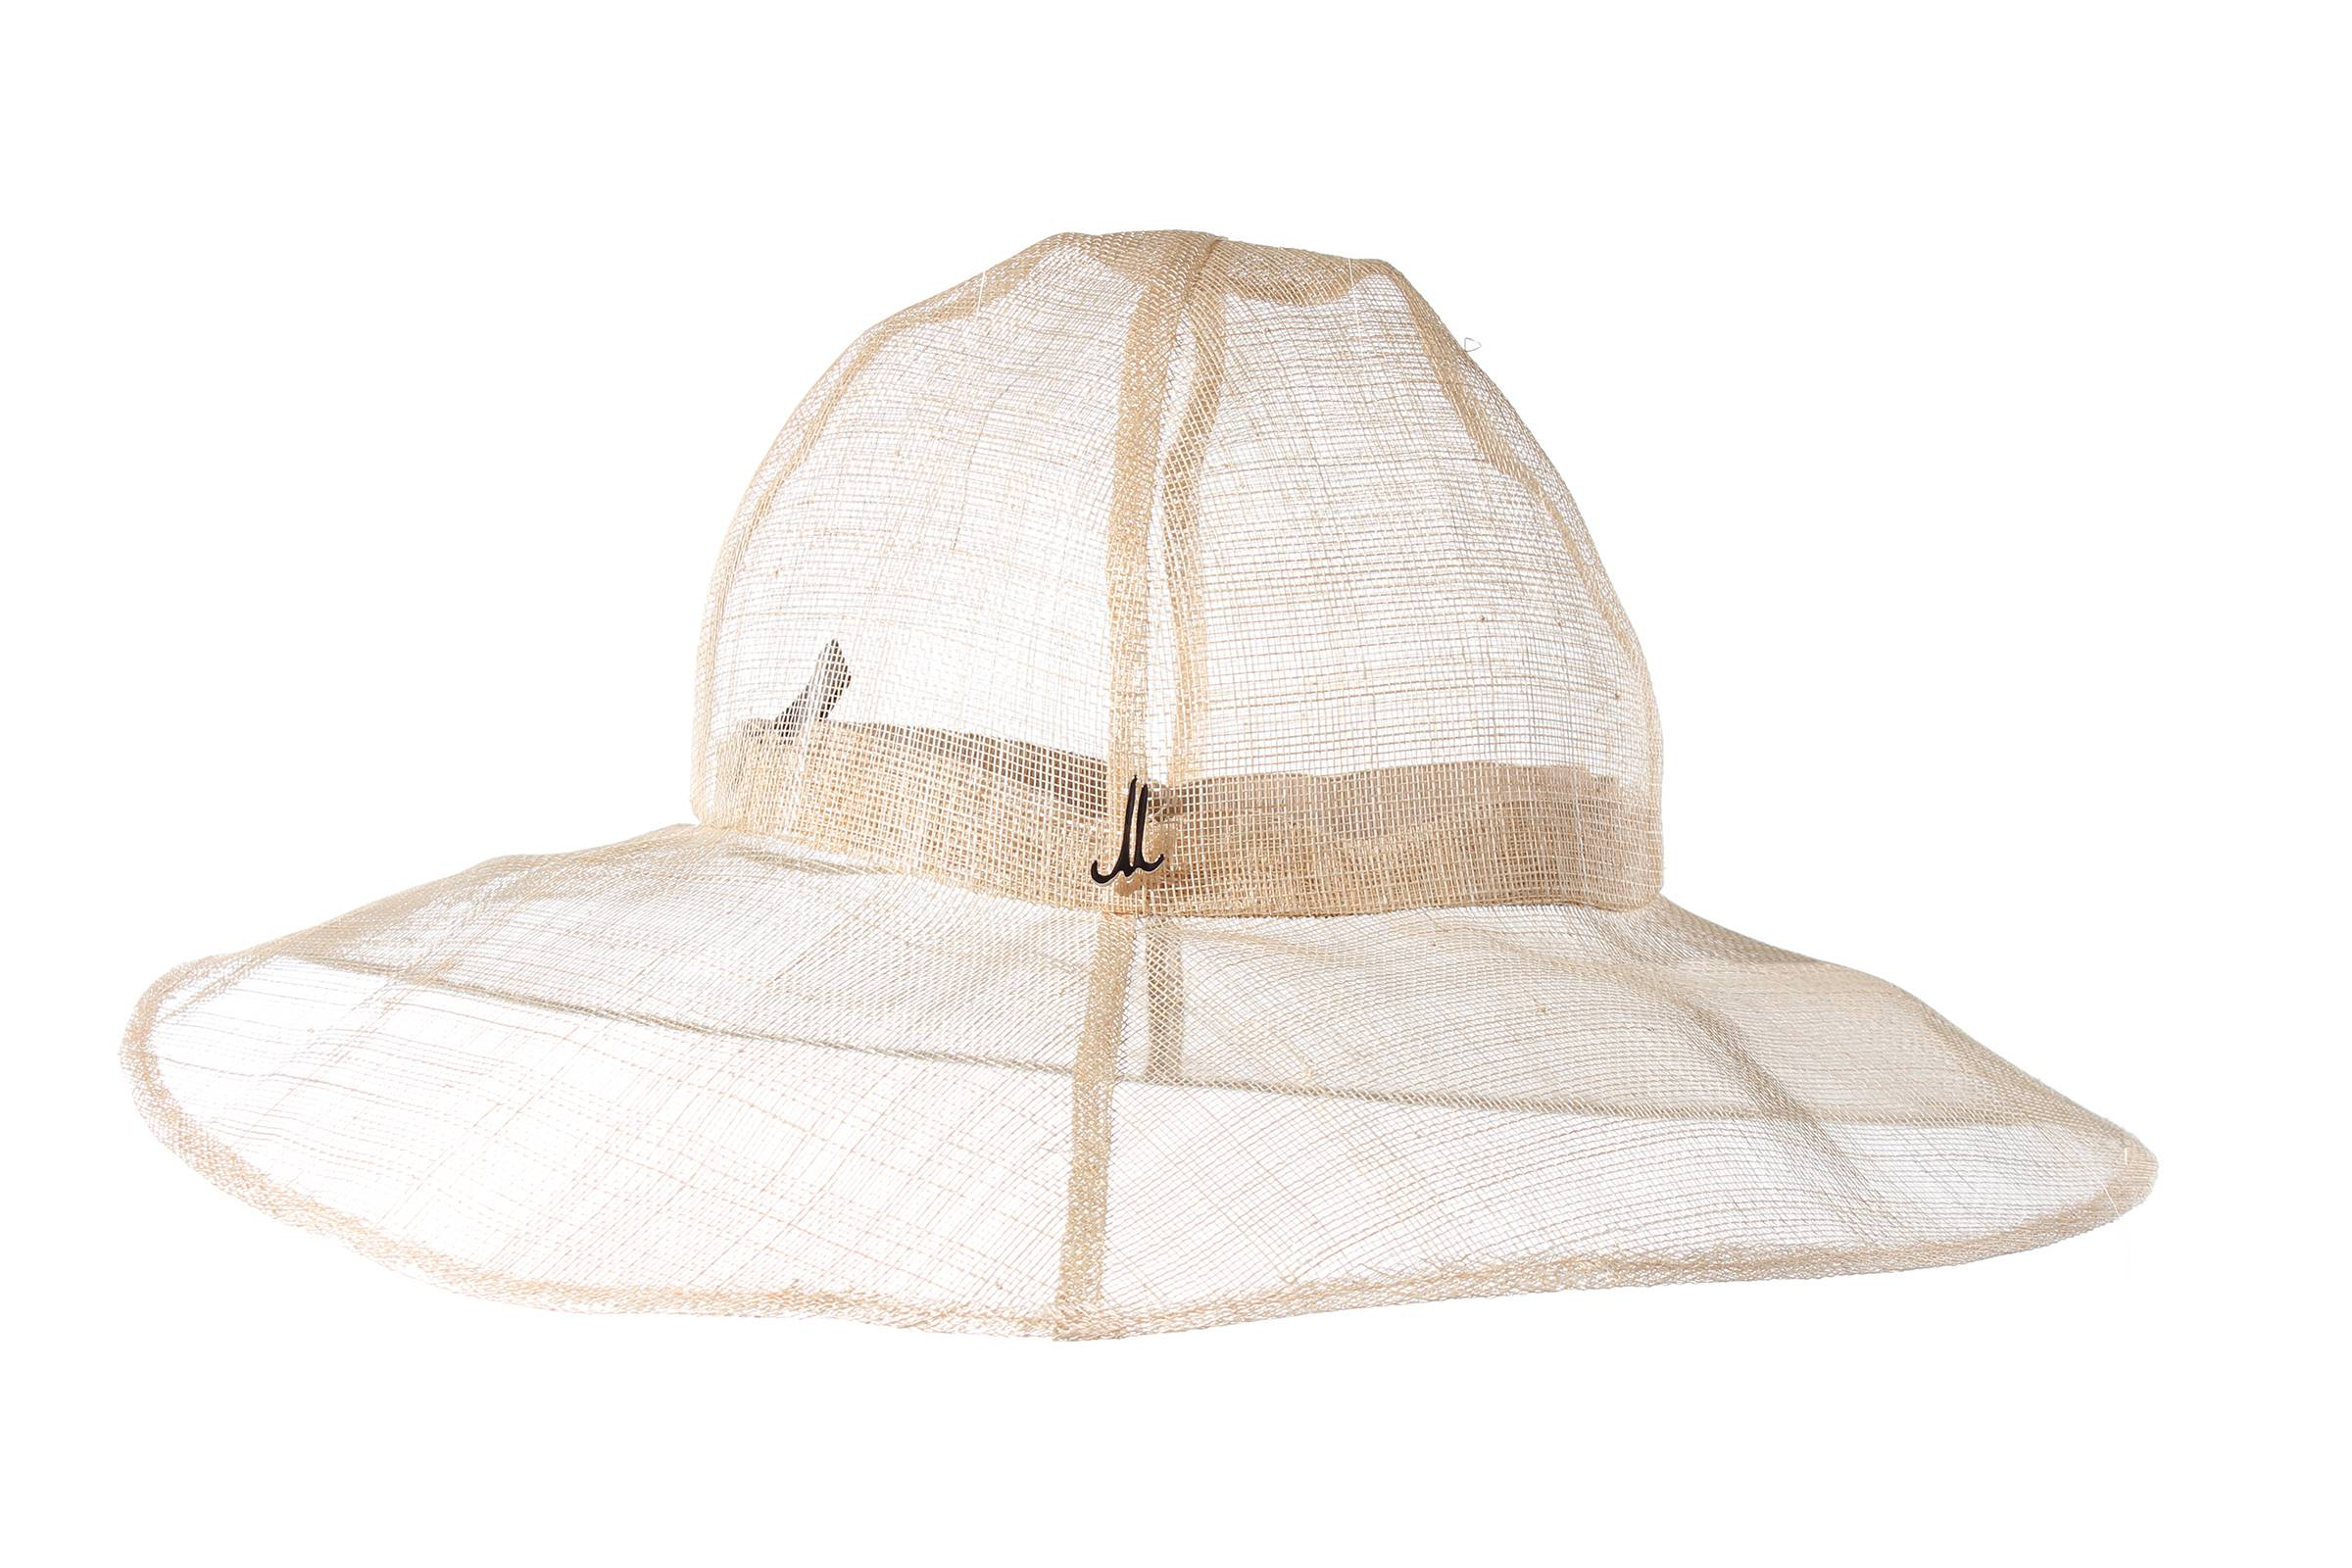 cloche LALE sinamay starched